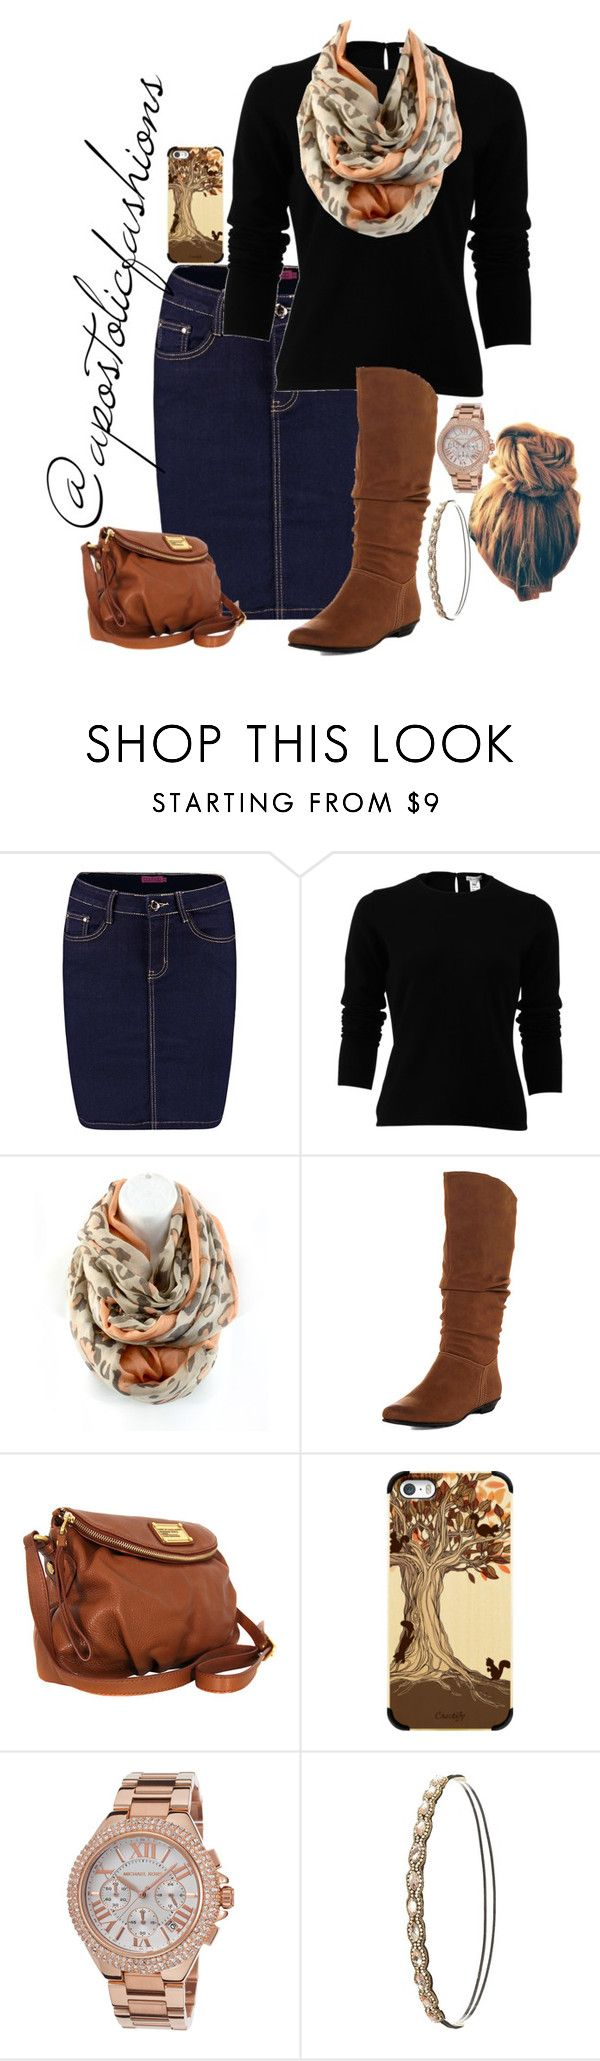 """Apostolic Fashions #1475"" by apostolicfashions on Polyvore featuring Boohoo, Oscar de la Renta, Dorothy Perkins, Marc by Marc Jacobs, Casetify, Michael Kors, Charlotte Russe, modestlykay and modestlywhit"